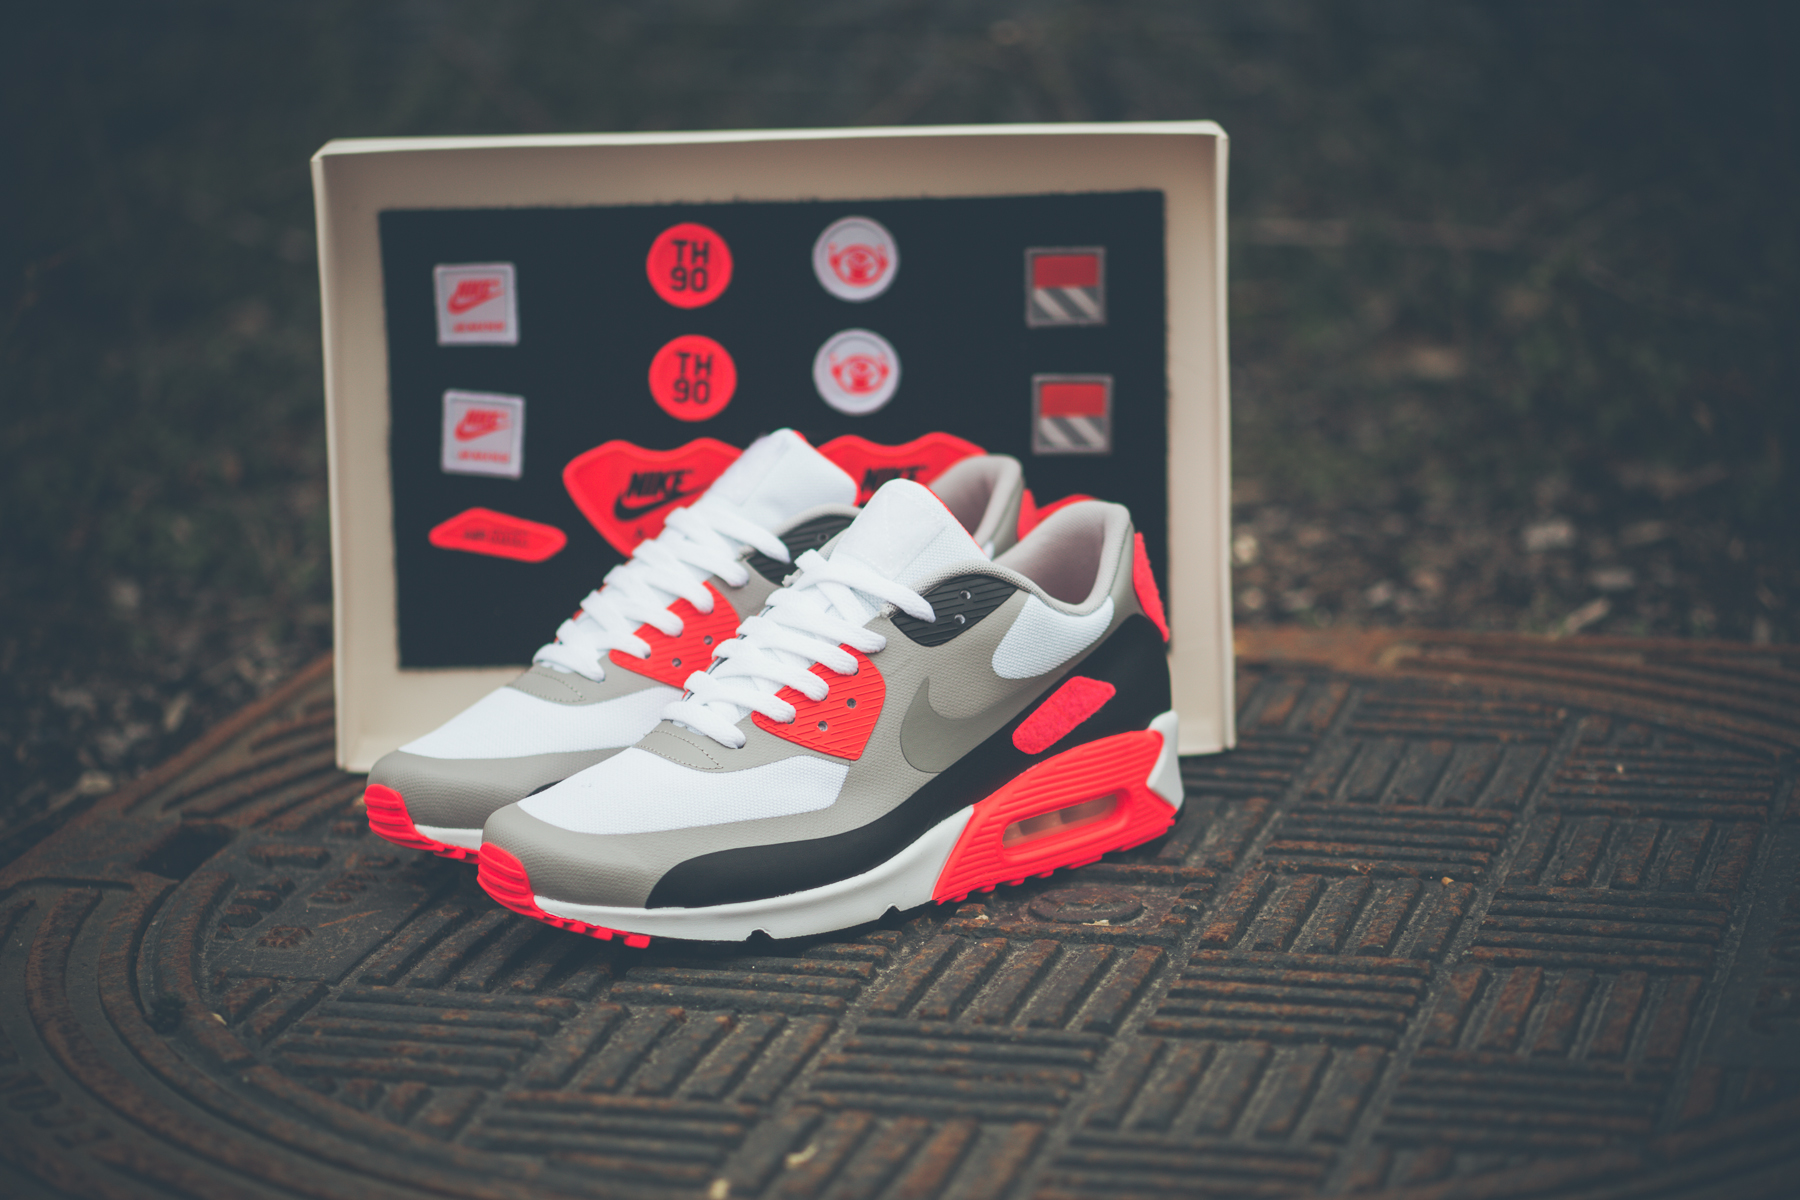 Nike Air Pack Max 90 Infrared 'Patch' Pack Air d0d4d5